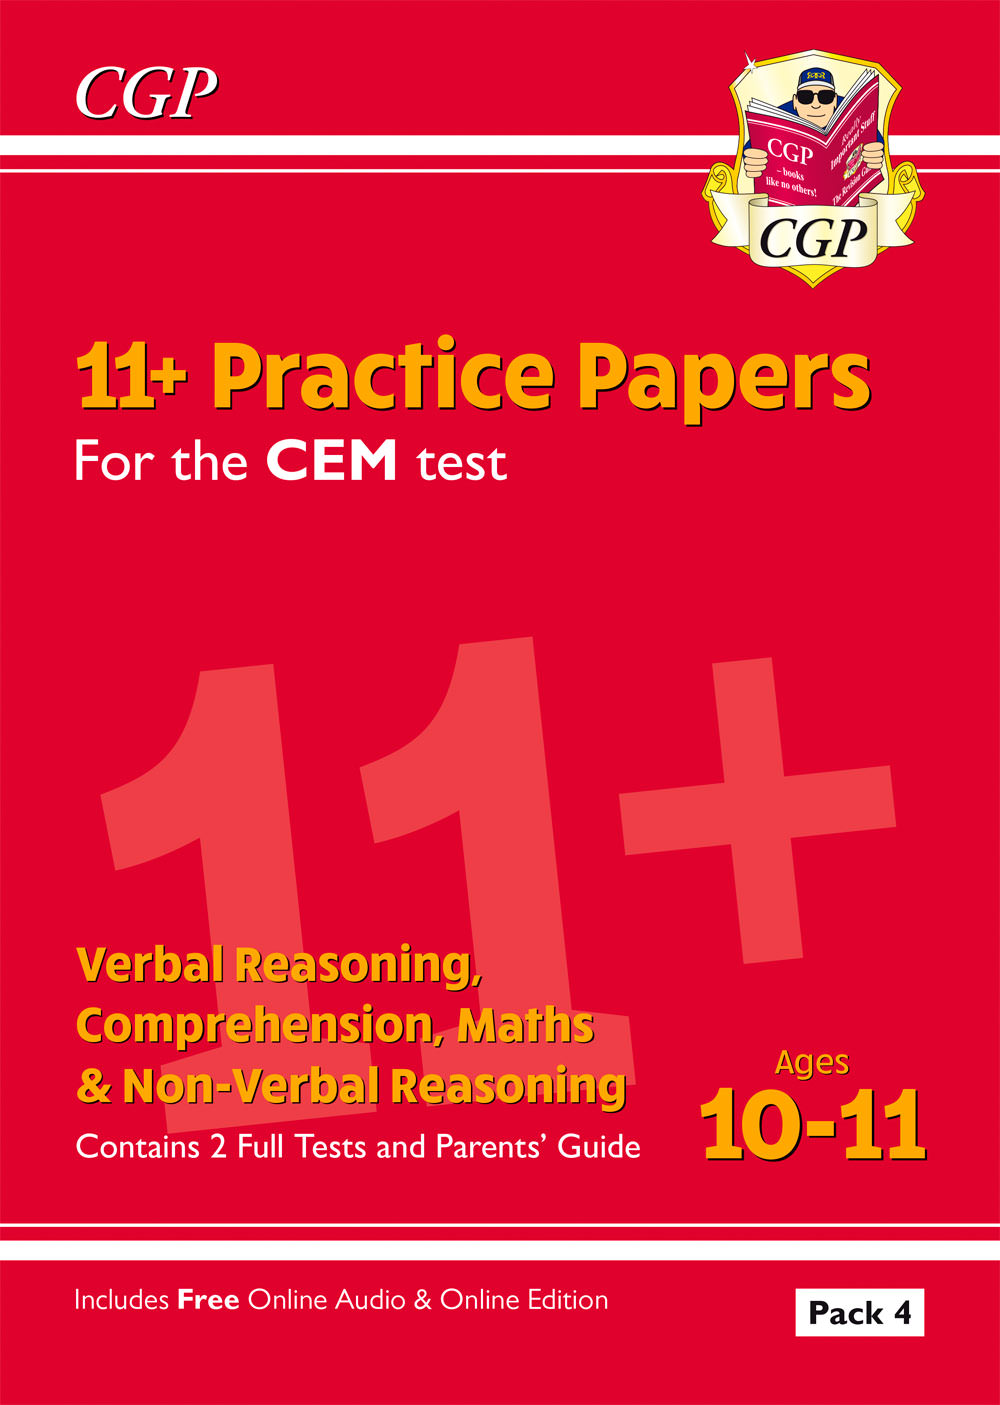 ELP4DE2 - New 11+ CEM Practice Papers: Ages 10-11 - Pack 4 (with Parents' Guide & Online Edition)